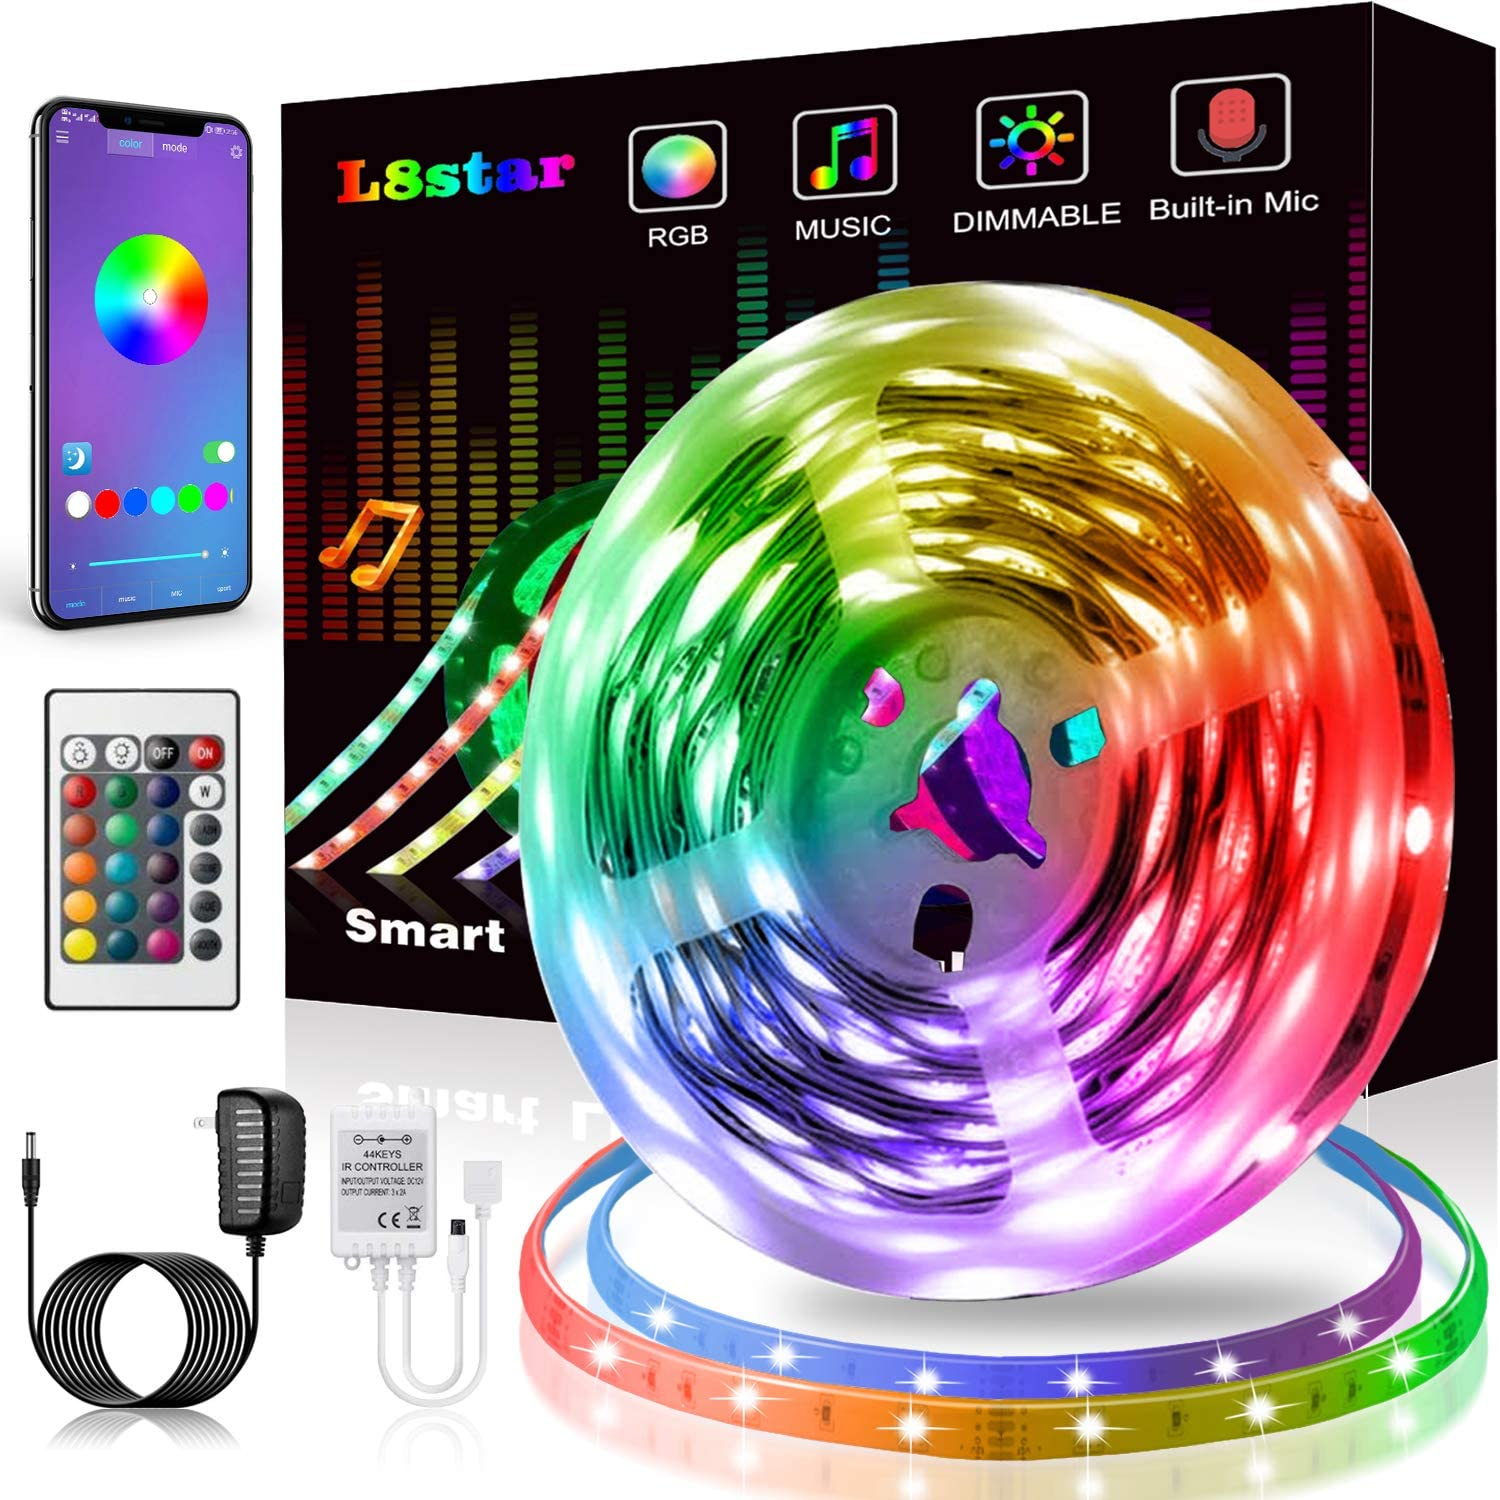 LED Strip Lights, KIKO Smart Color Changing LED Lights 16.4ft/5m SMD 5050 RGB Light Strips with Bluetooth Controller Sync to Music Apply for Bedroom, Party, Home Decoration